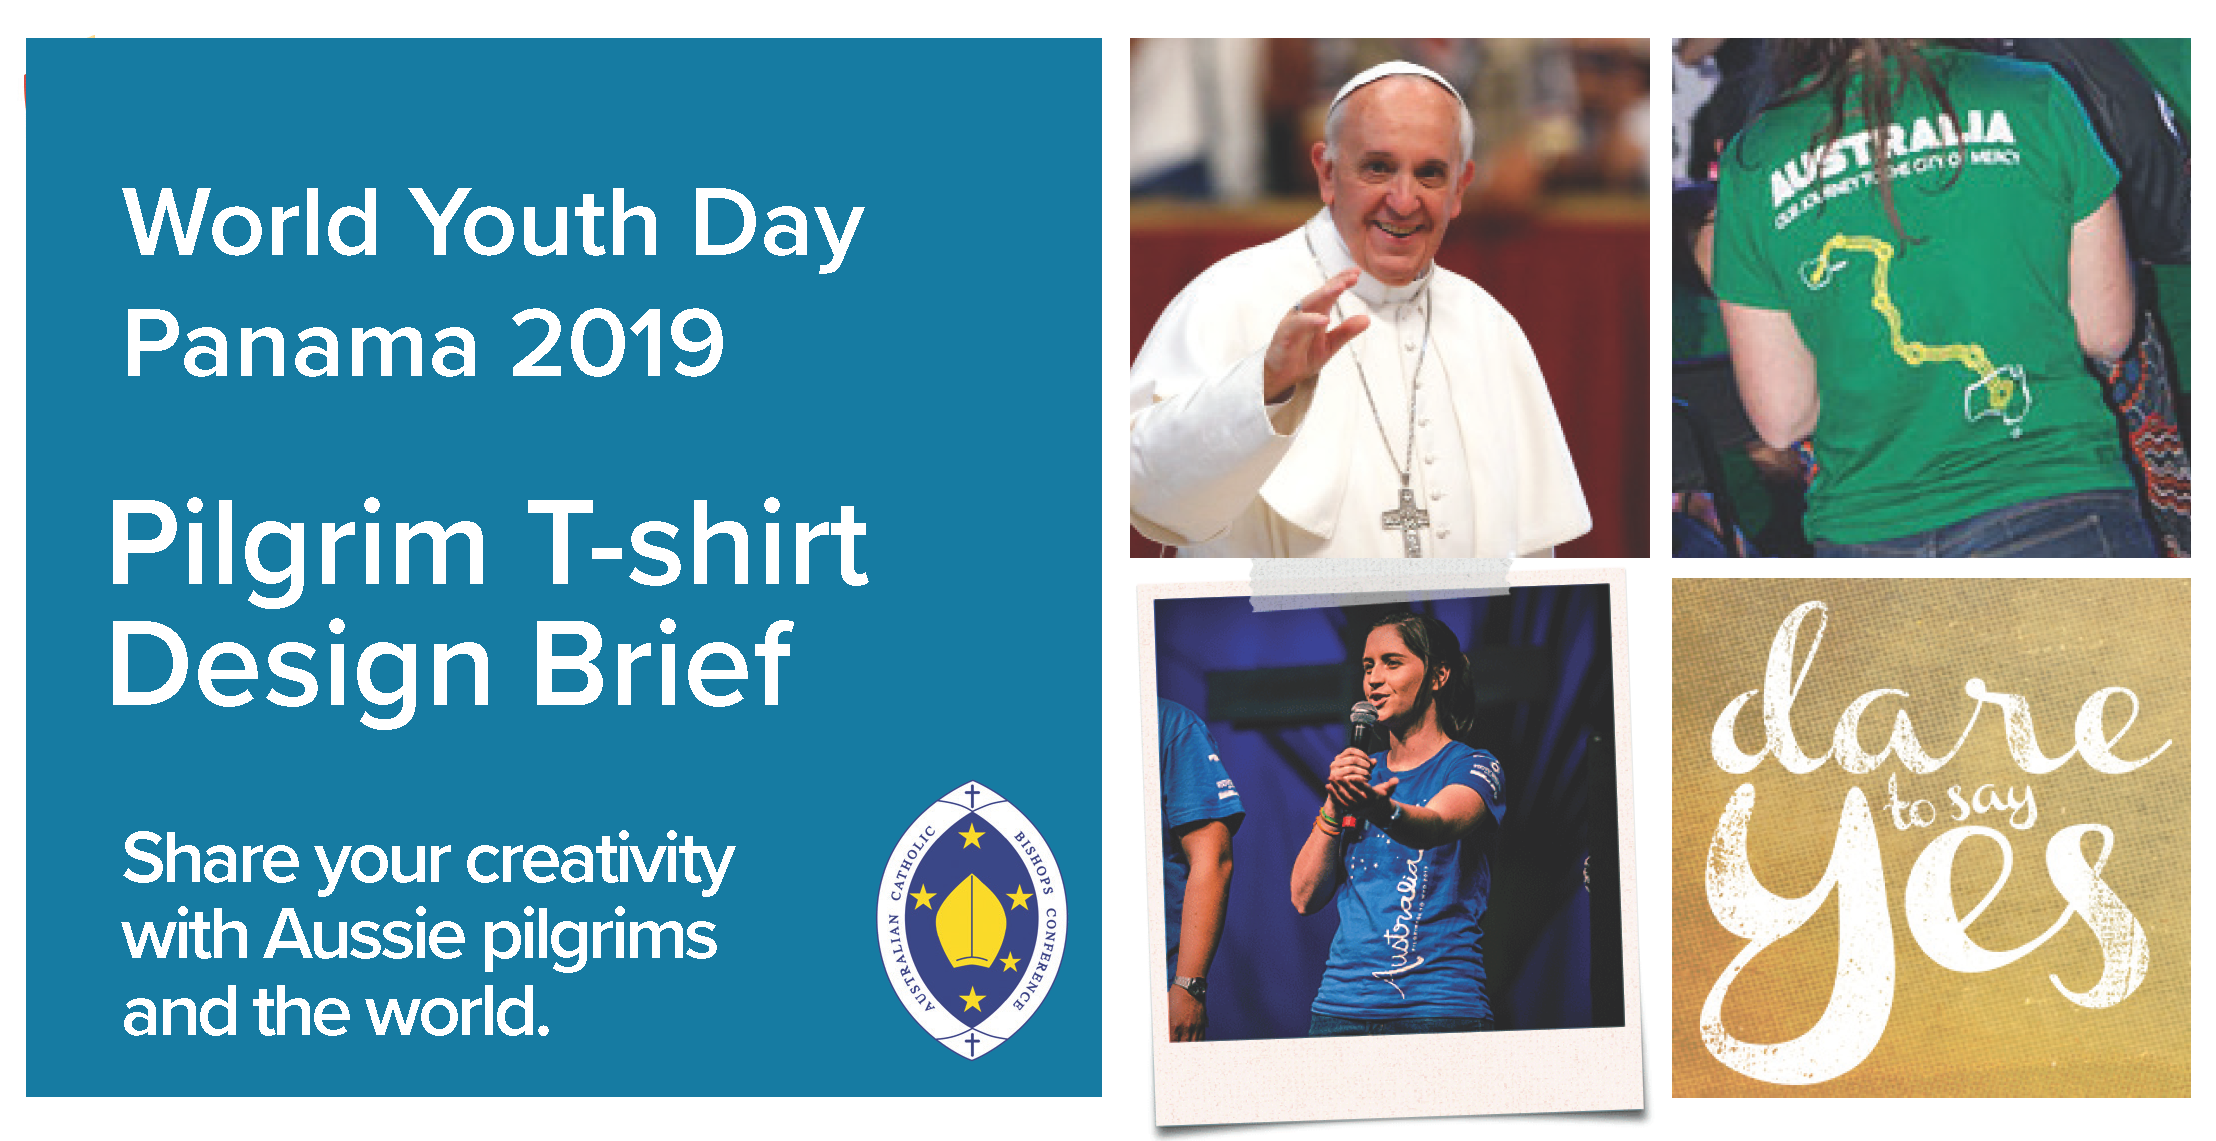 WYD2019 Pilgim Tshirt Design Brief